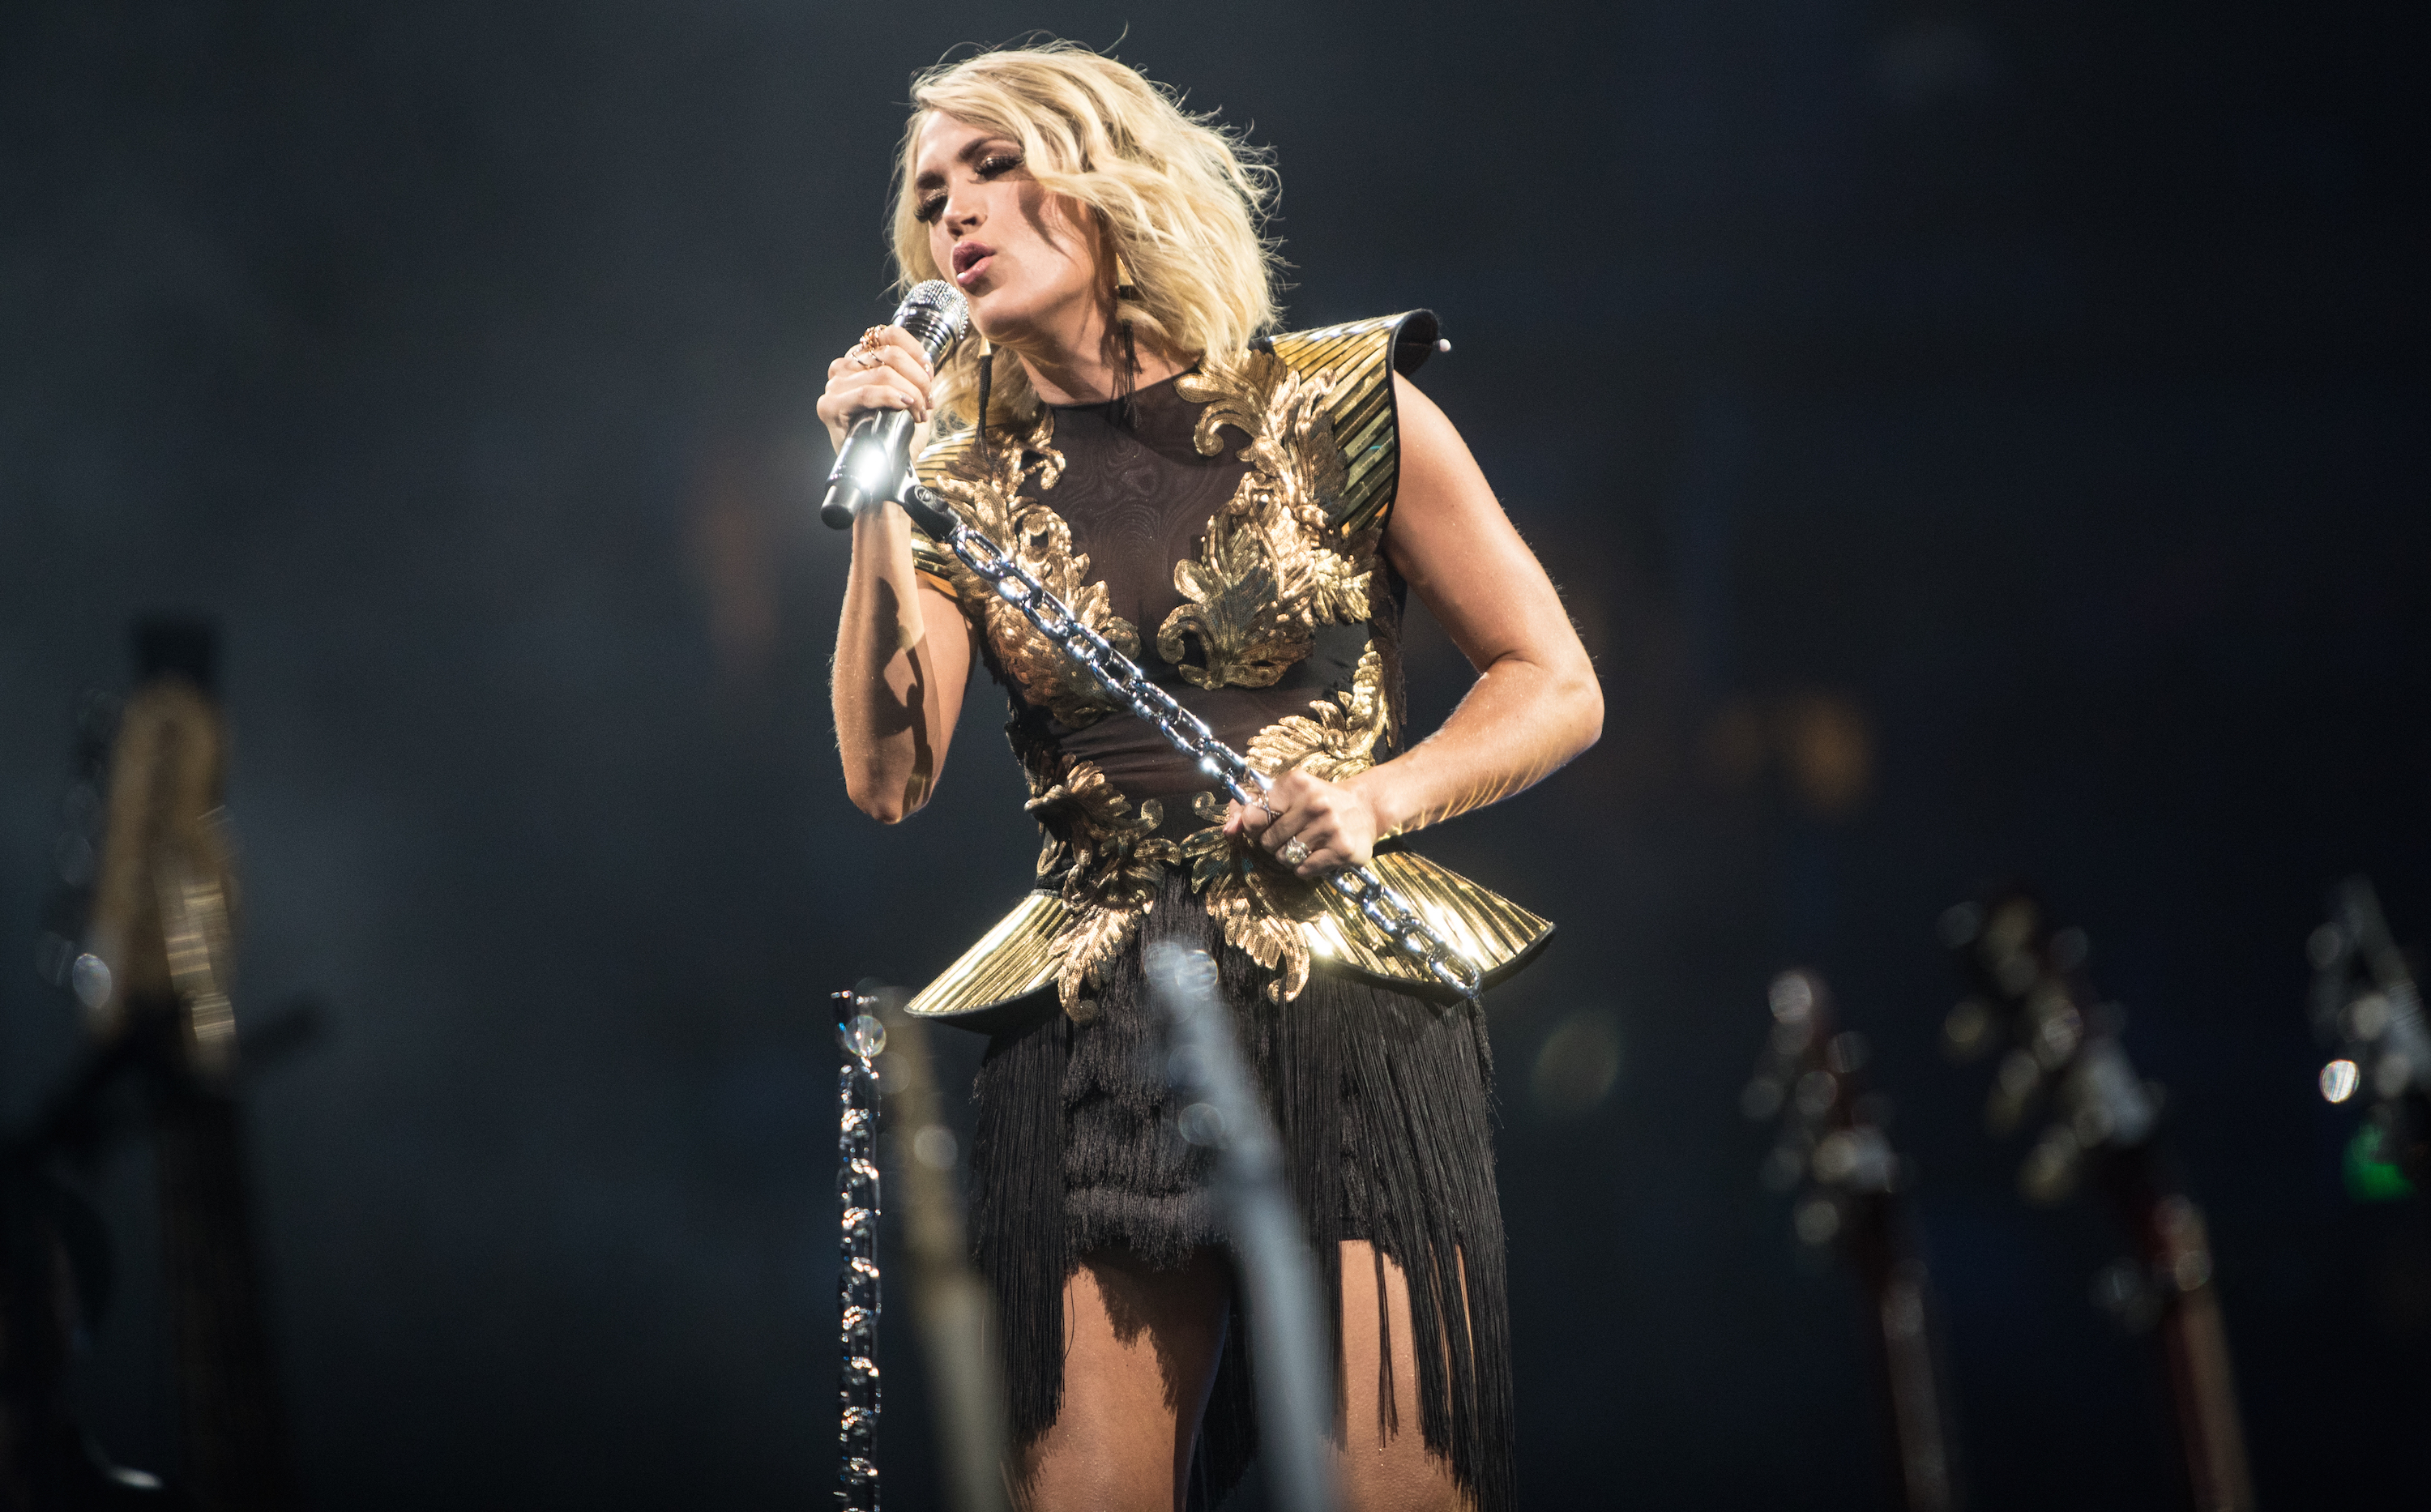 Hear Carrie Underwood's Emotional New Song